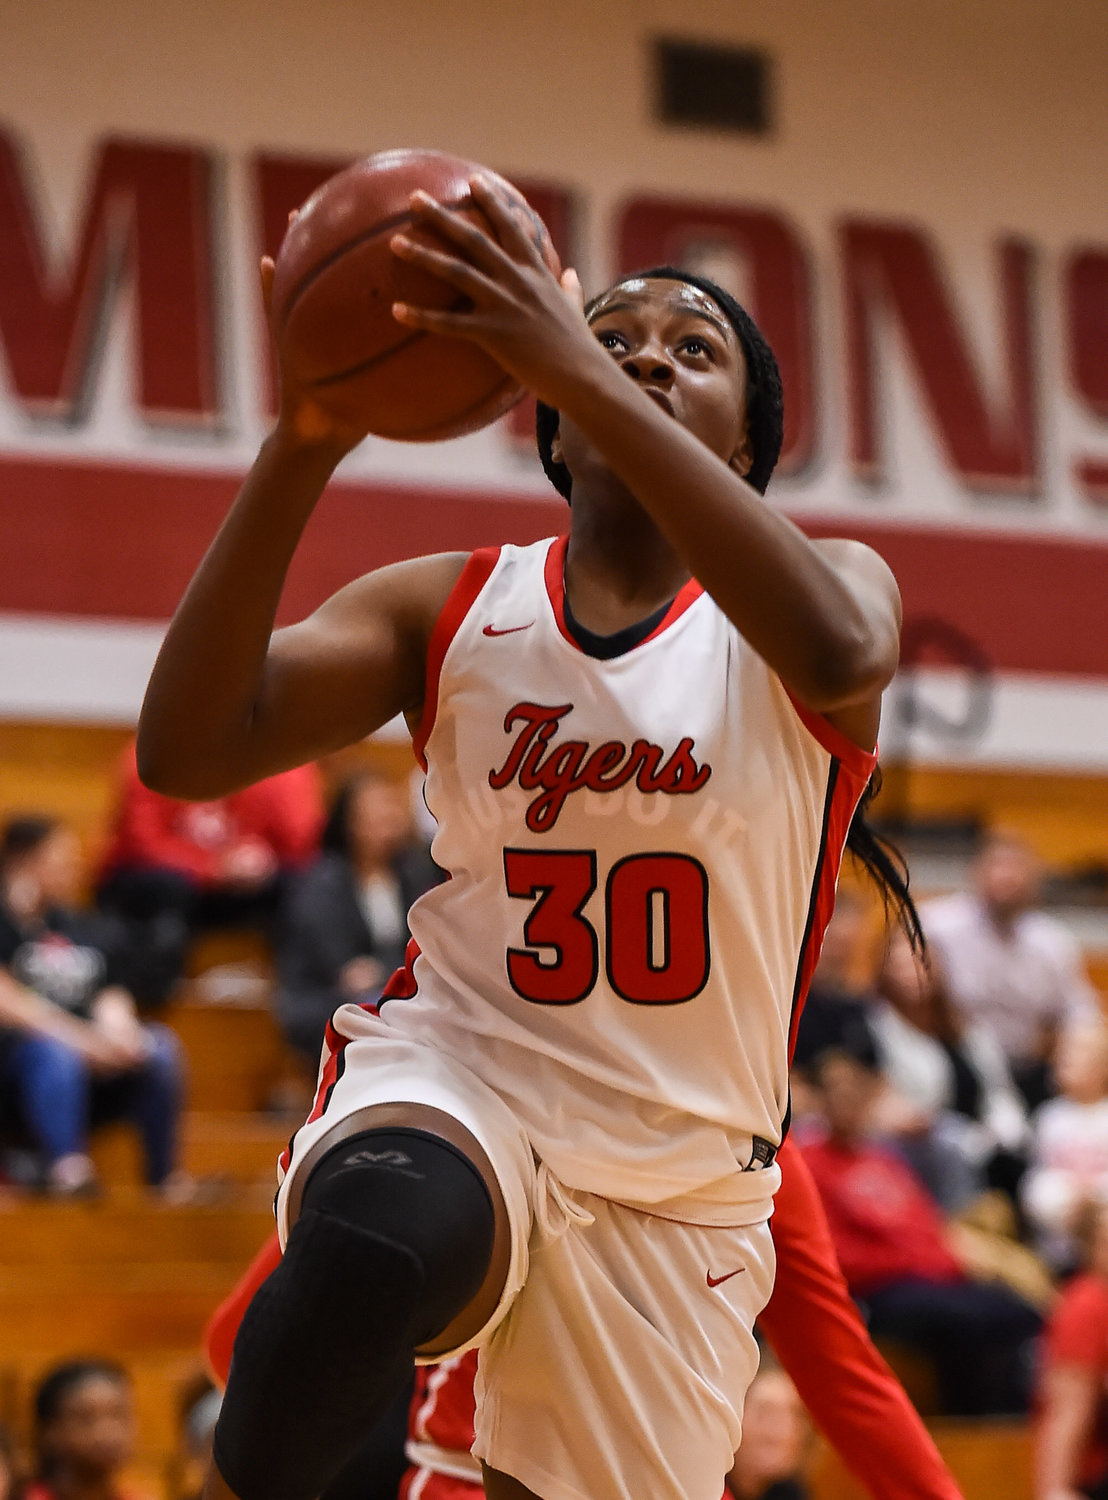 Katy Tx. Dec. 10, 2019: Katy's Joy Jegede (30) drives to the basket during a non-district basketball game between Katy Tigers and Clear Brook Wolverines at Katy HS.  (Photo by Mark Goodman / Katy Times)